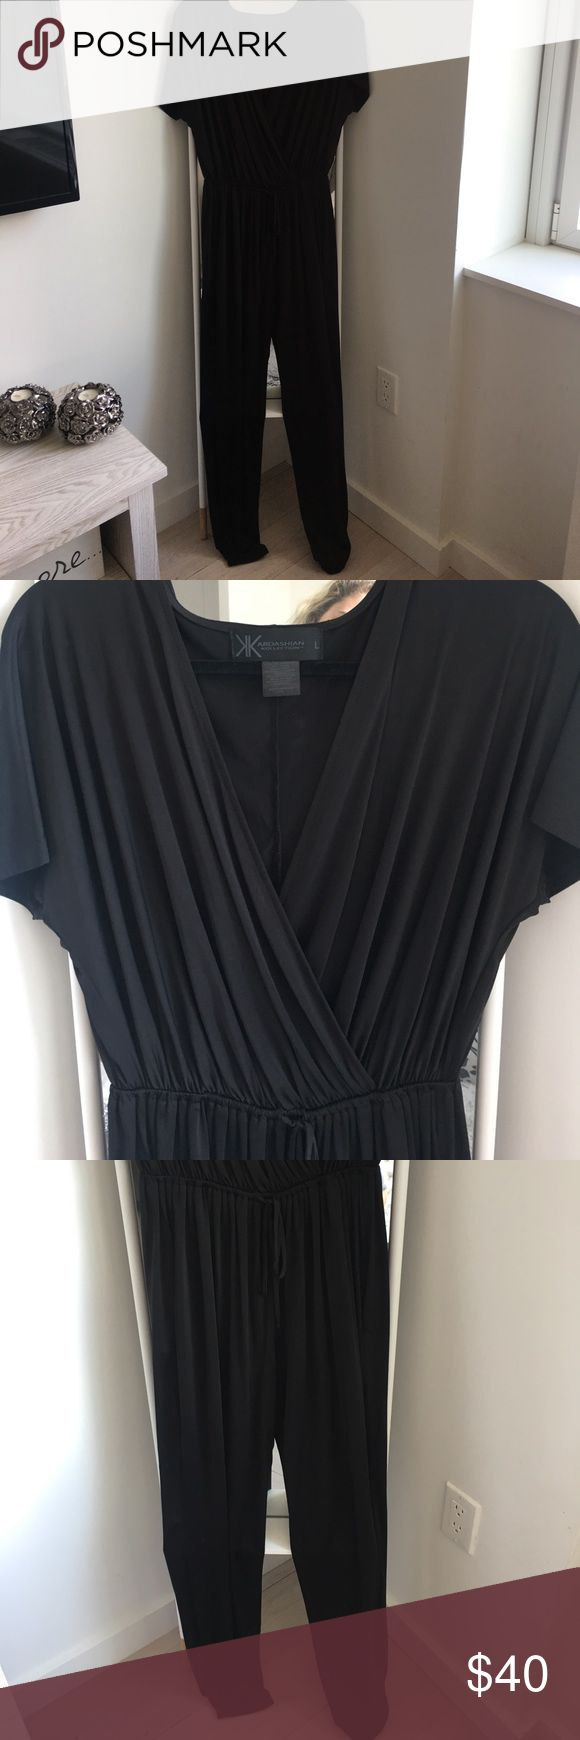 Kardashian Kollection Jumpsuit Kardashian Kollection black jumpsuit. So stylish and in with the jumpsuit trend! Only worn ONCE! Kardashian Kollection Other